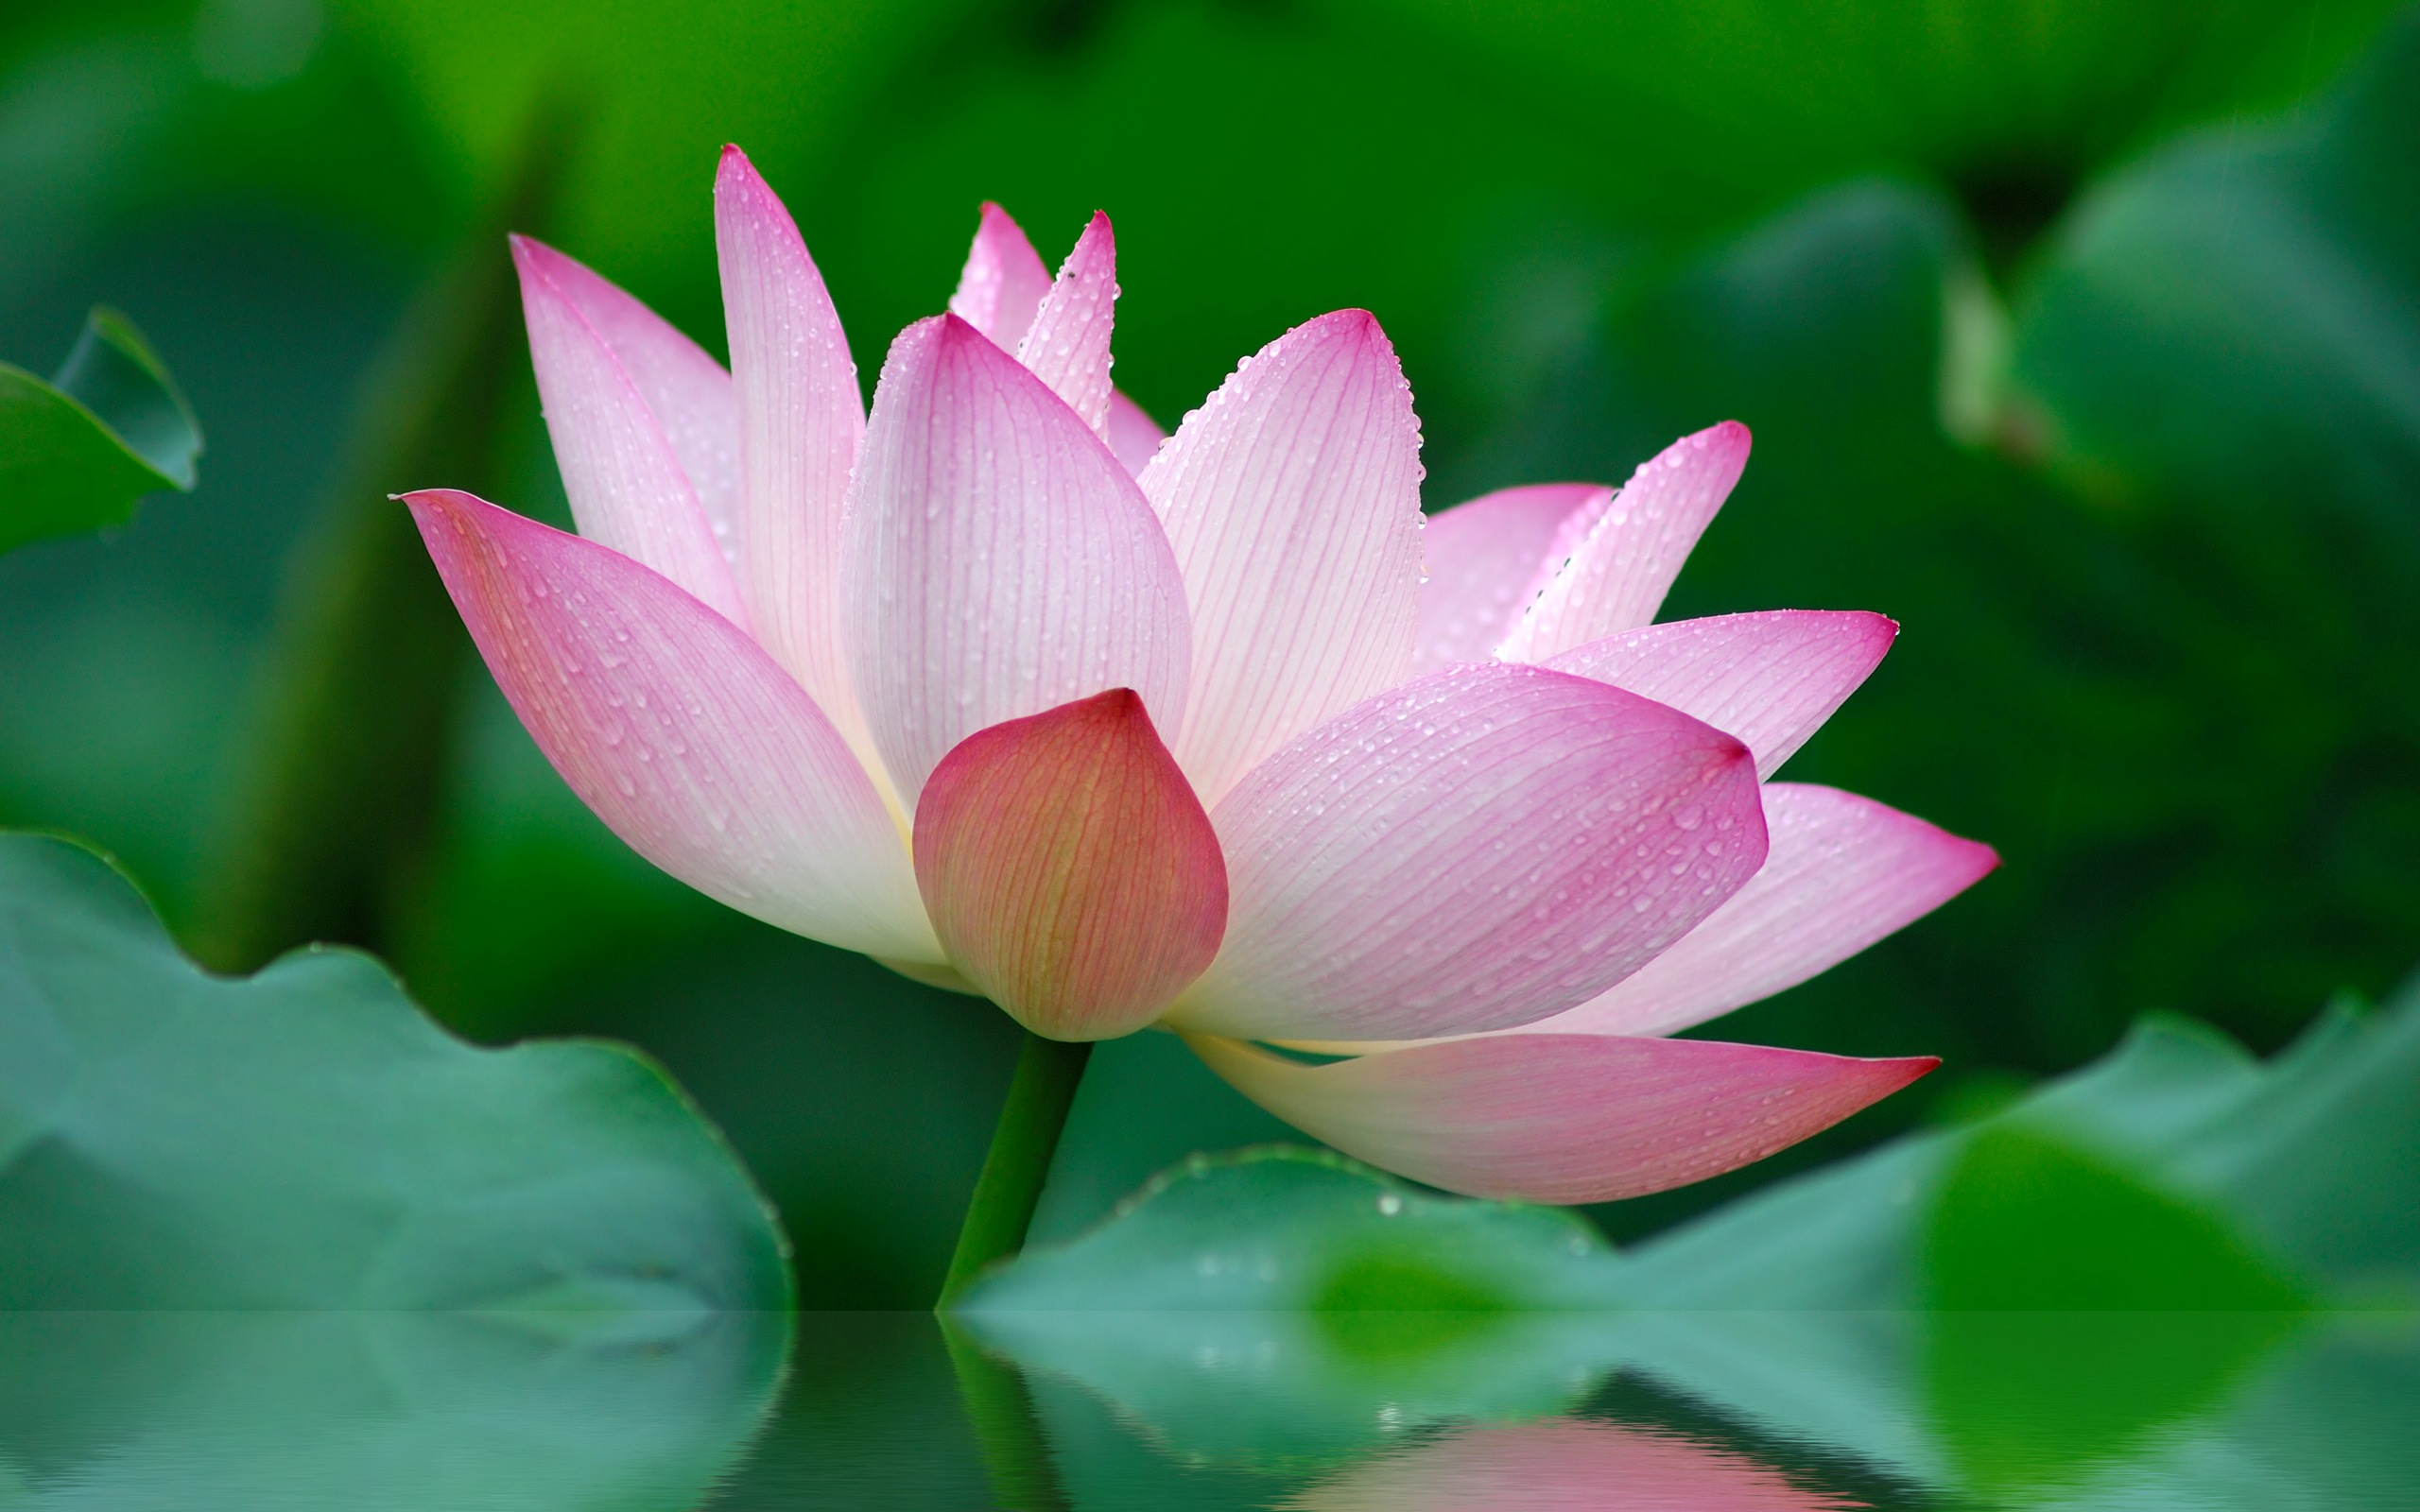 Apple Lotus Flower Wallpaper Wallpapersafari